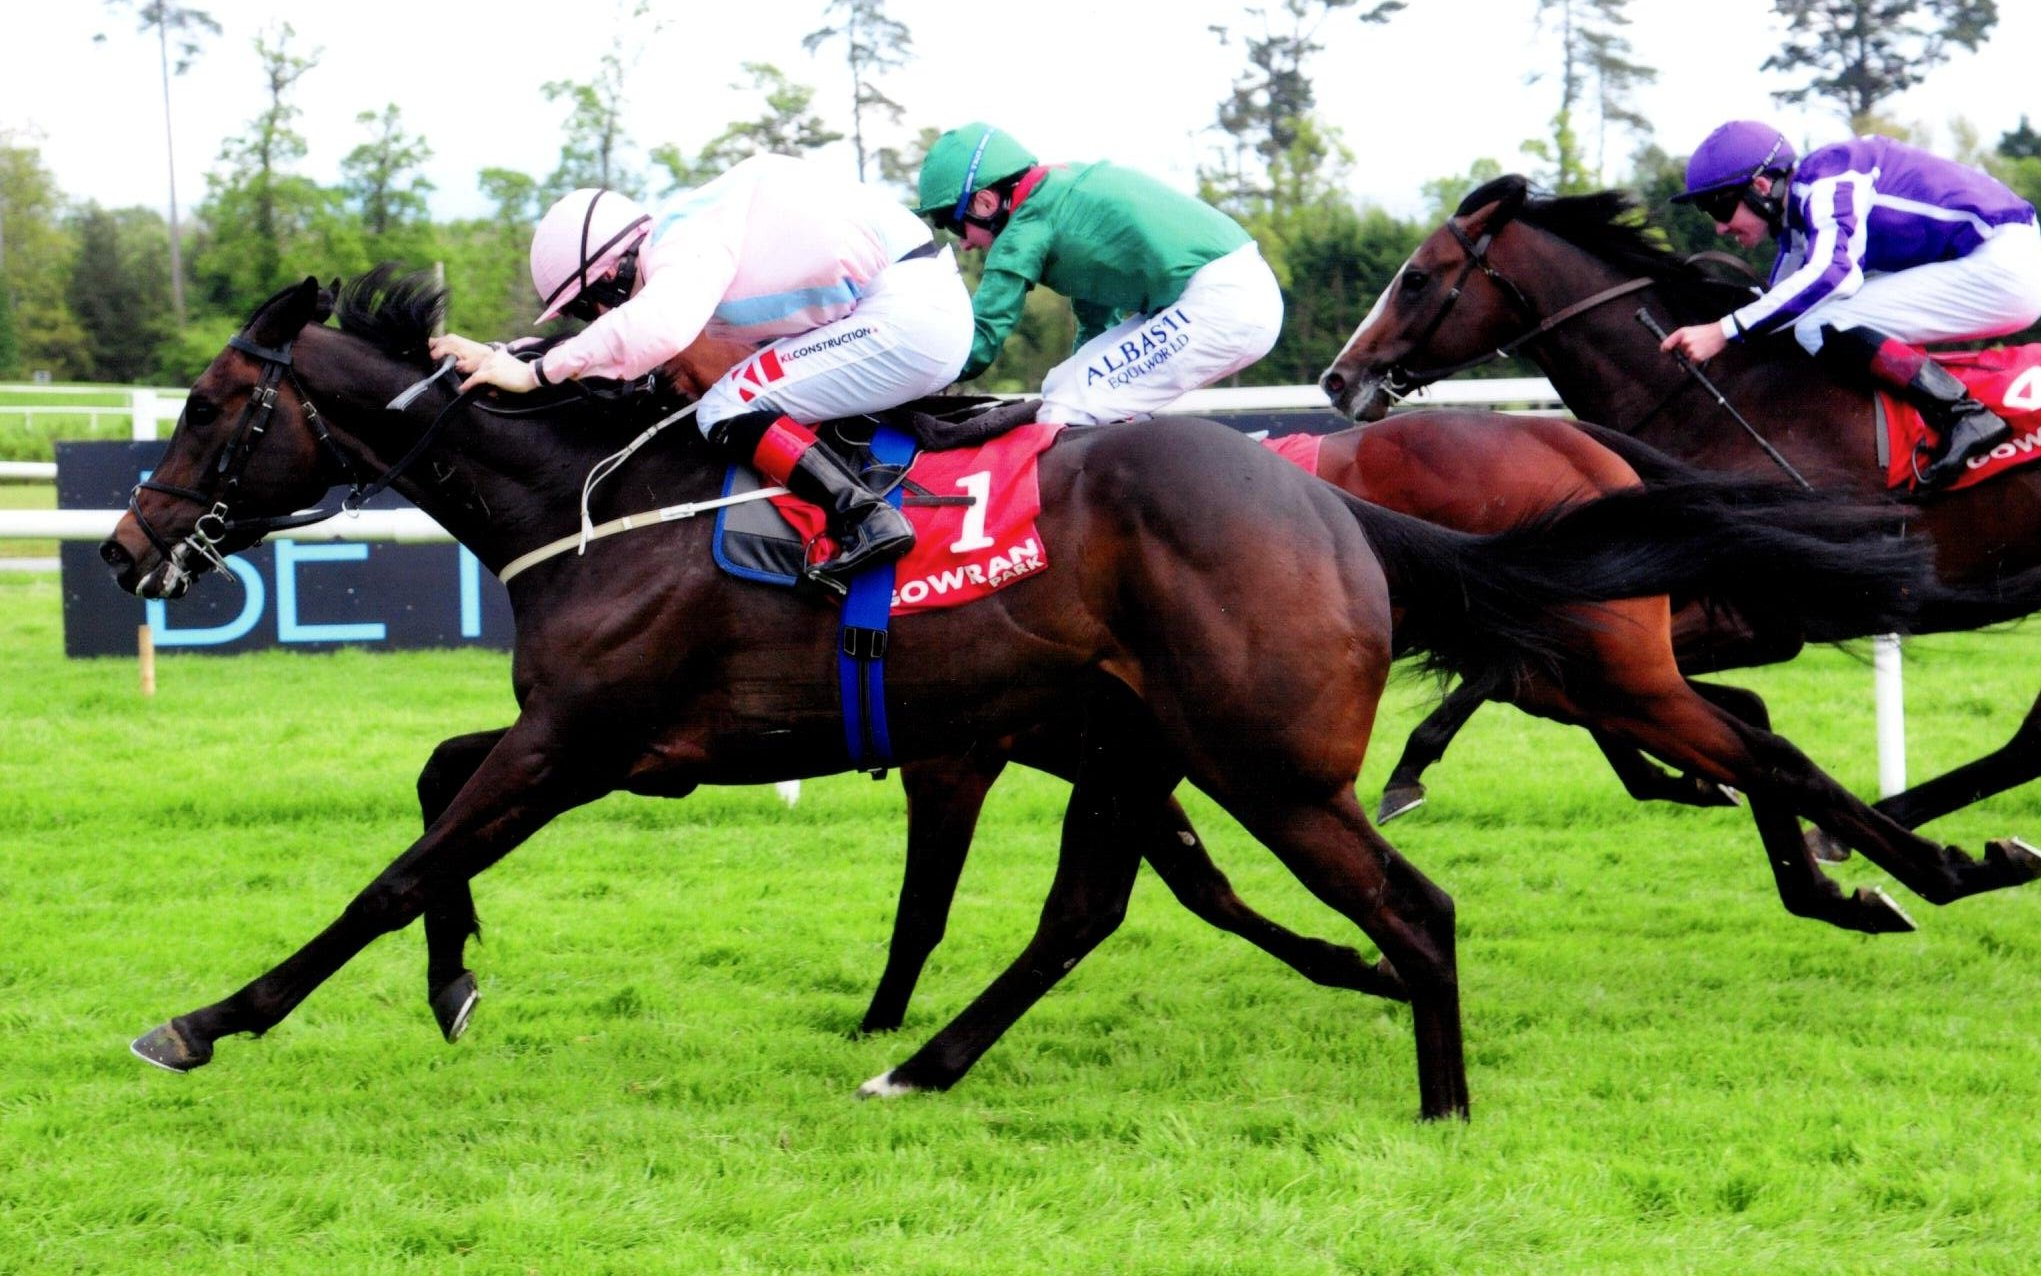 BASIC LAW lands his second success of the season at Gowran, 5th May